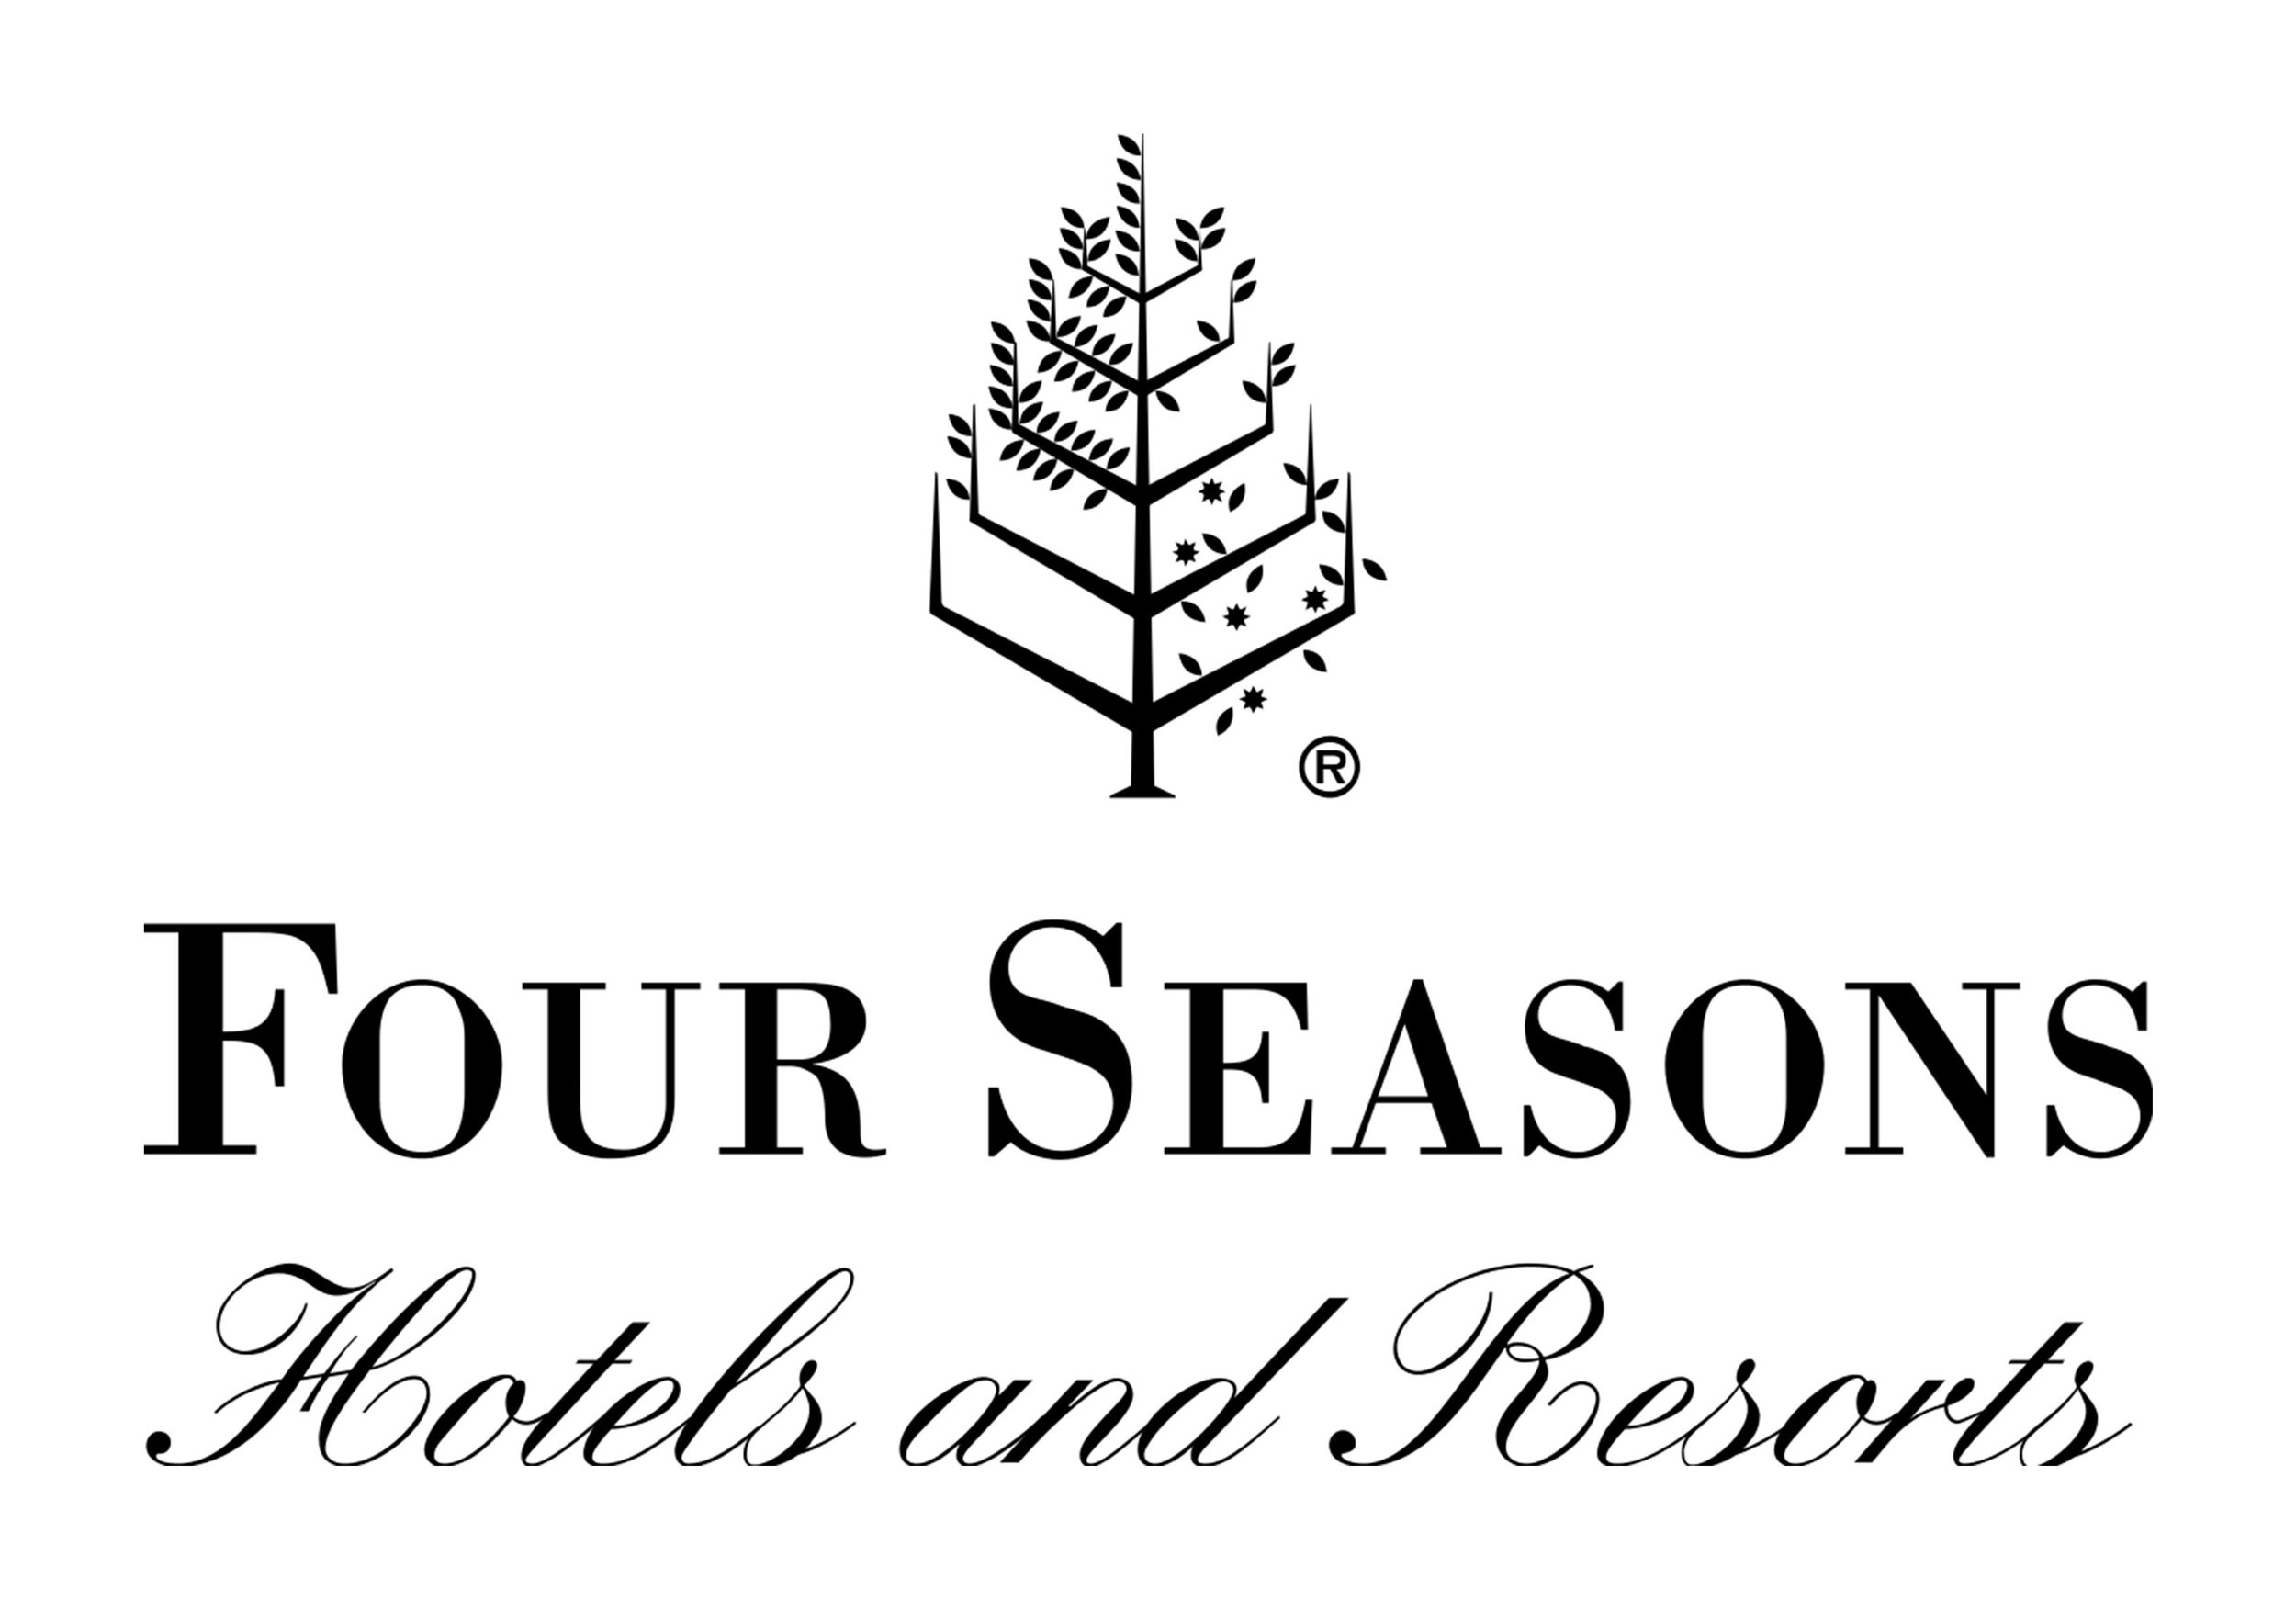 ..  Four seasons hotels and resorts